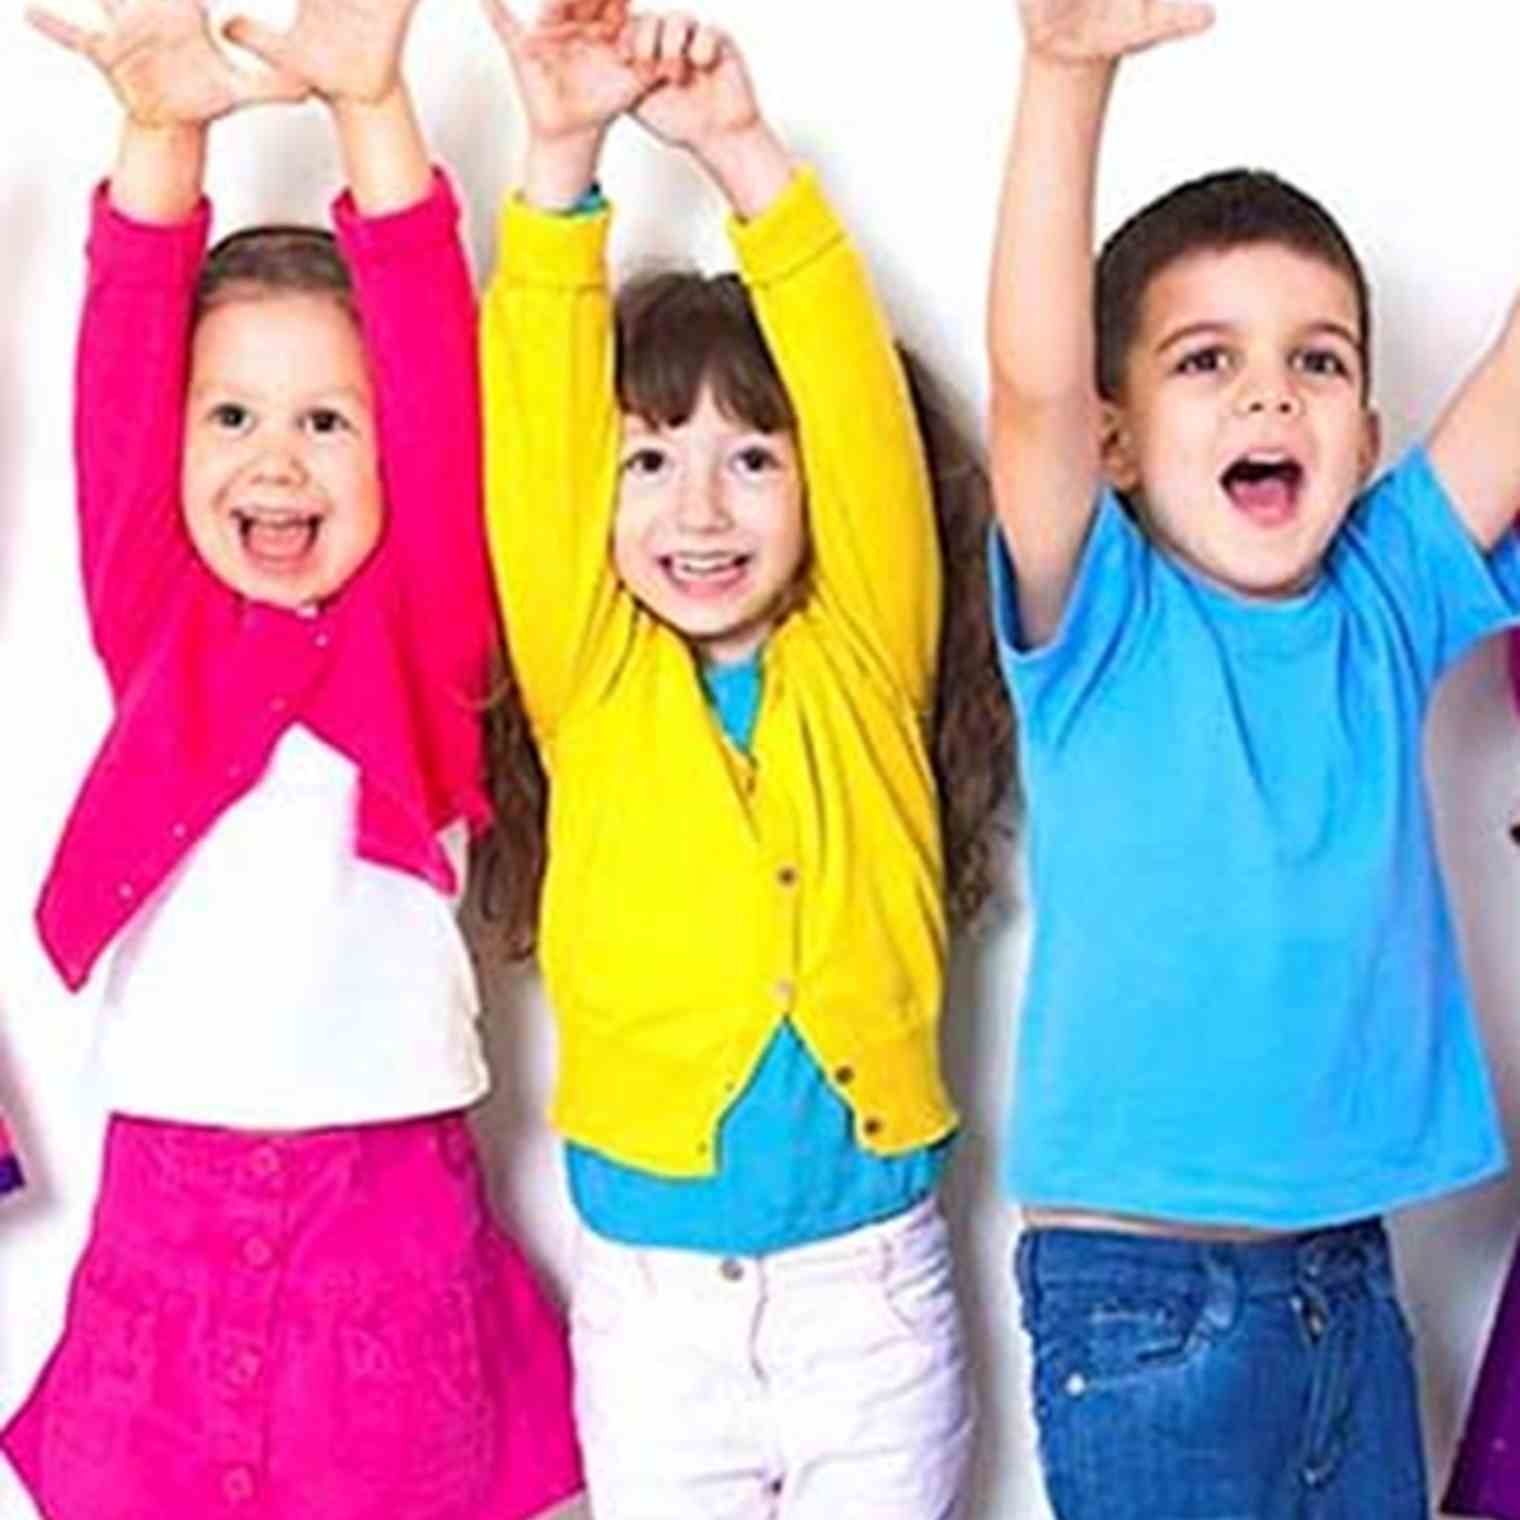 New Score To Assess Child Development Tno Flexus Gesture Control Sleeve Youth Growing Up Healthily Safely And With Good Life Chances